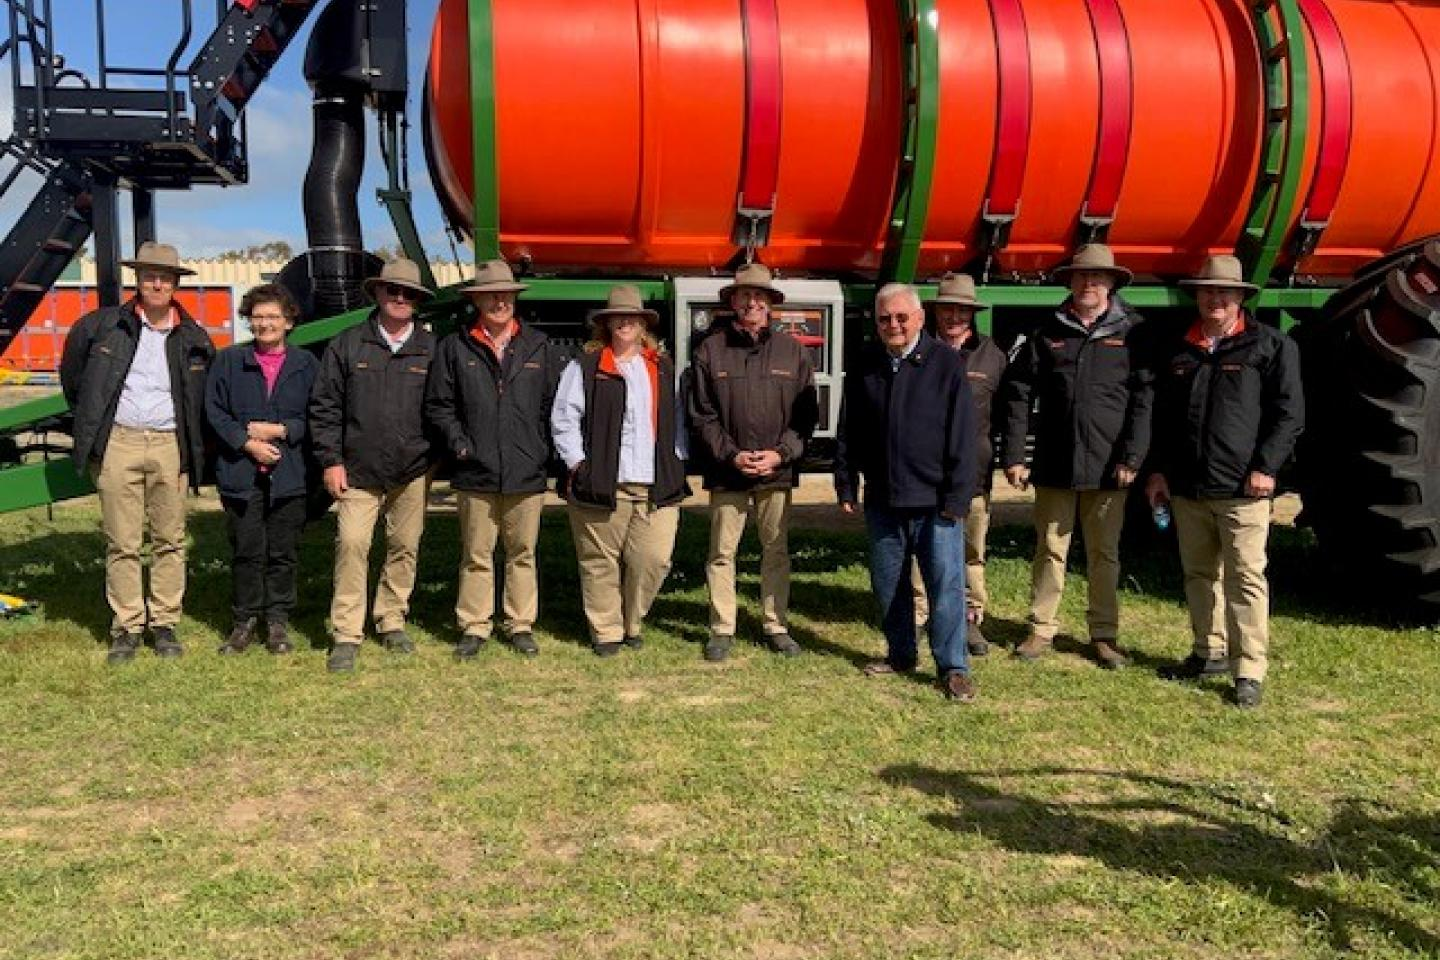 Ausplow was represented by a majority of its staff at Dowerin to handle customer queries and inquiries. The team included managing director John Ryan AM (fourth from the right),